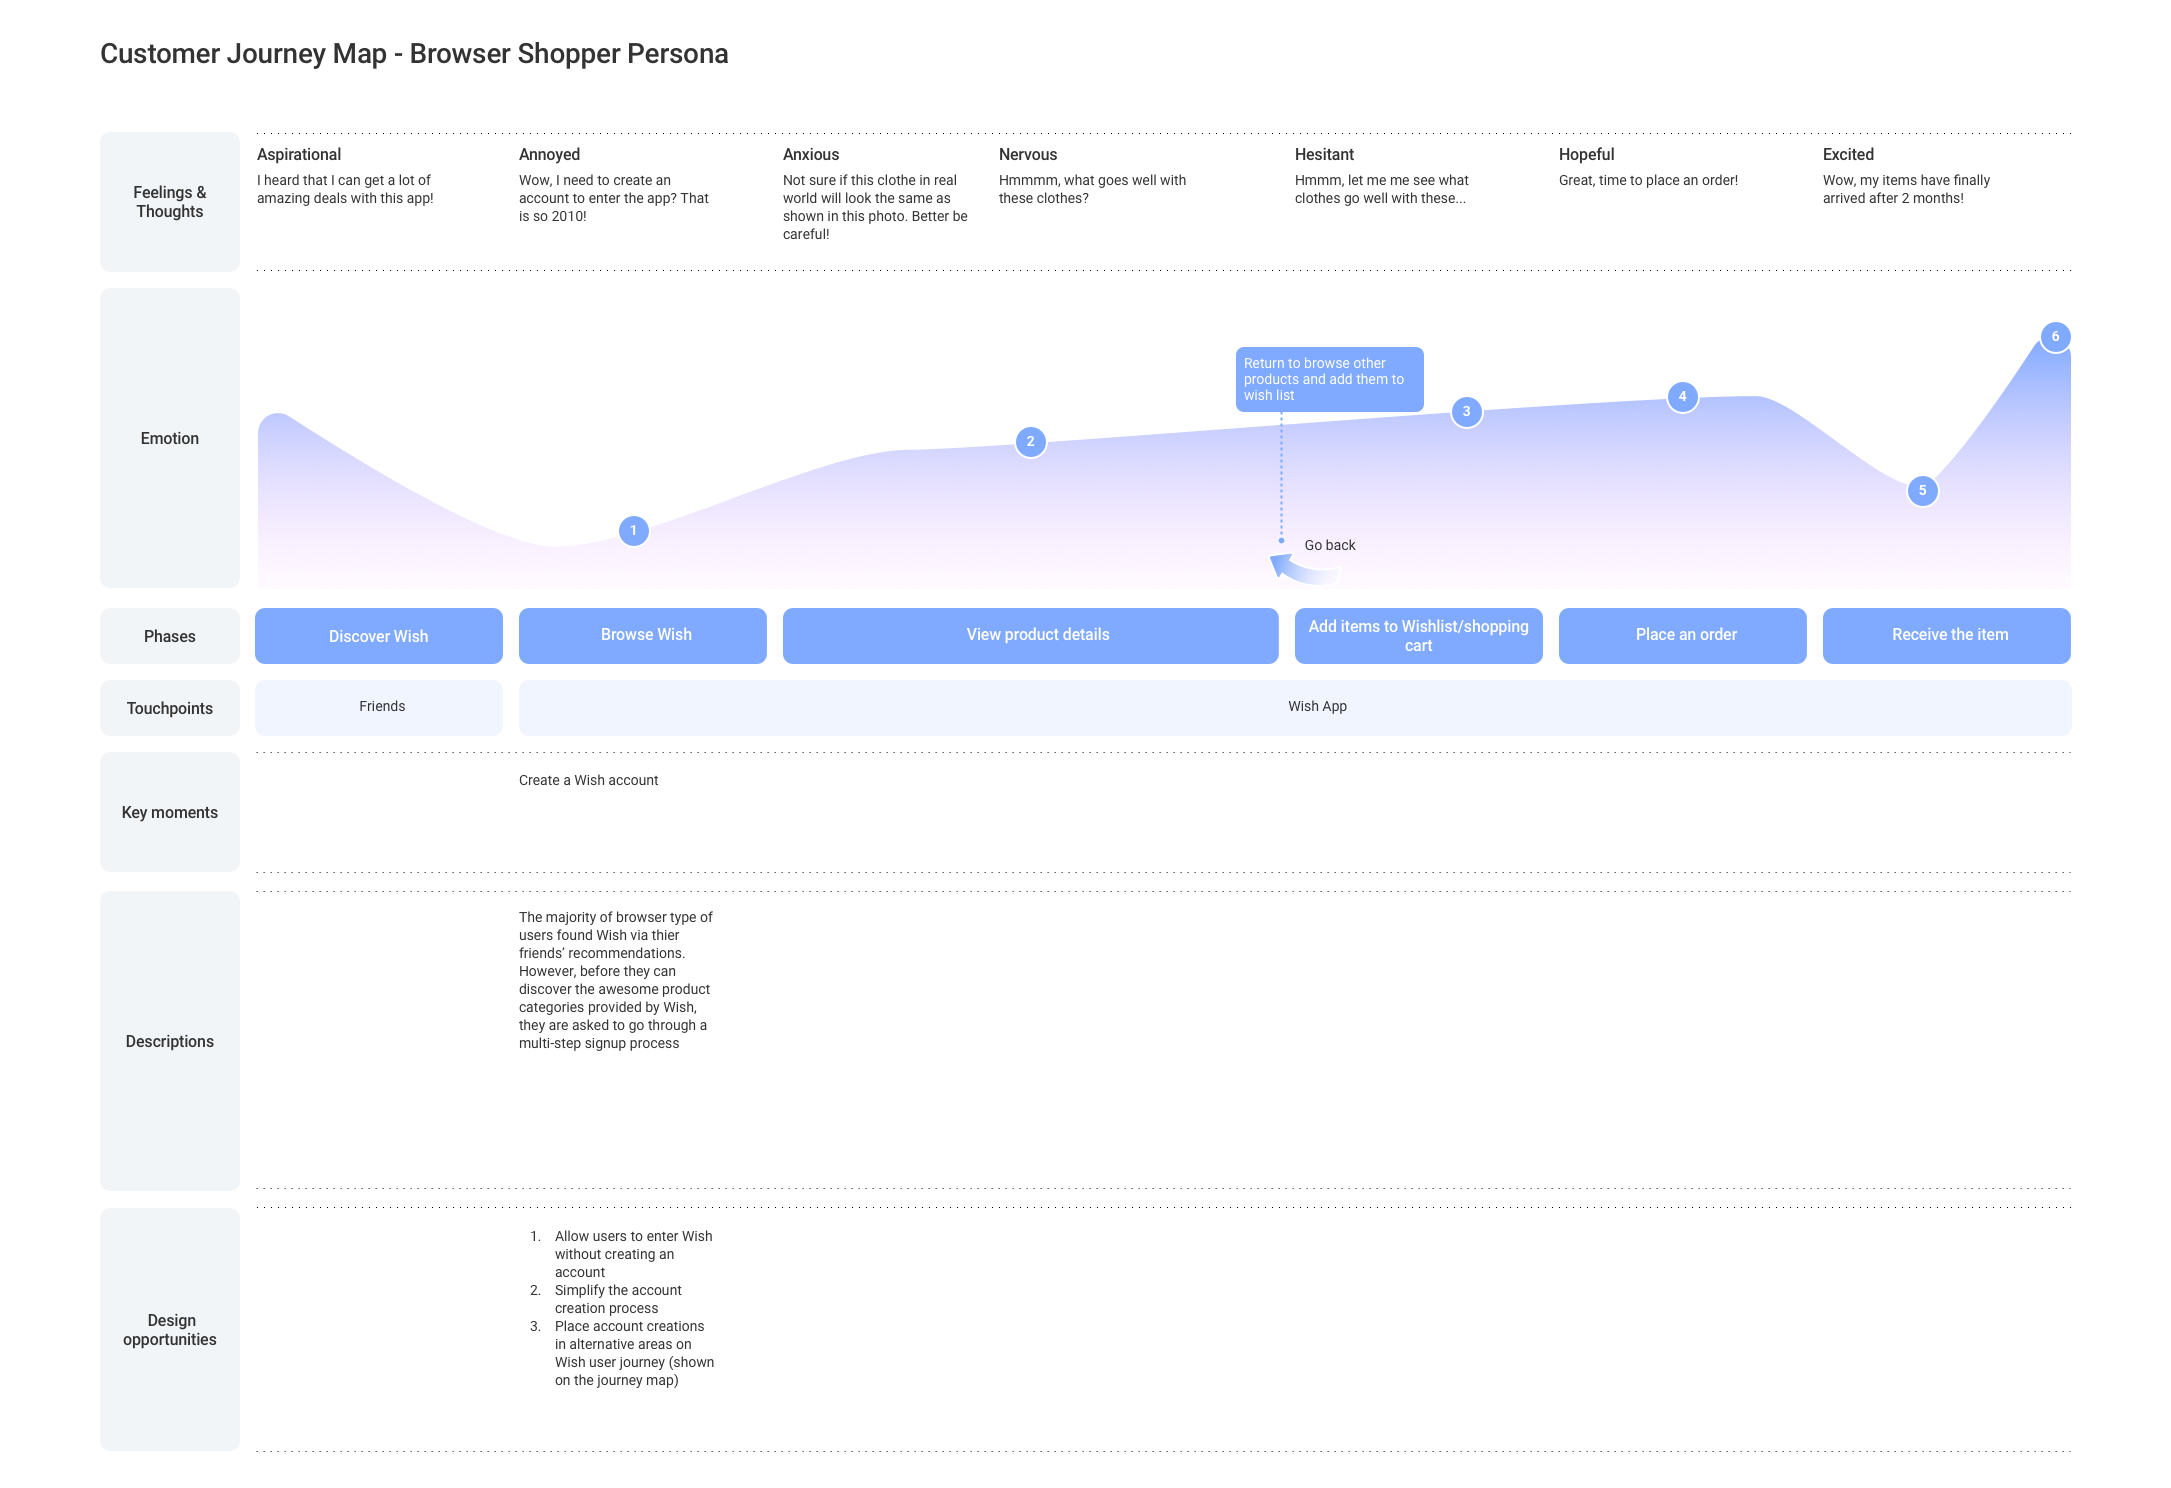 Customer_journey_map_template.png